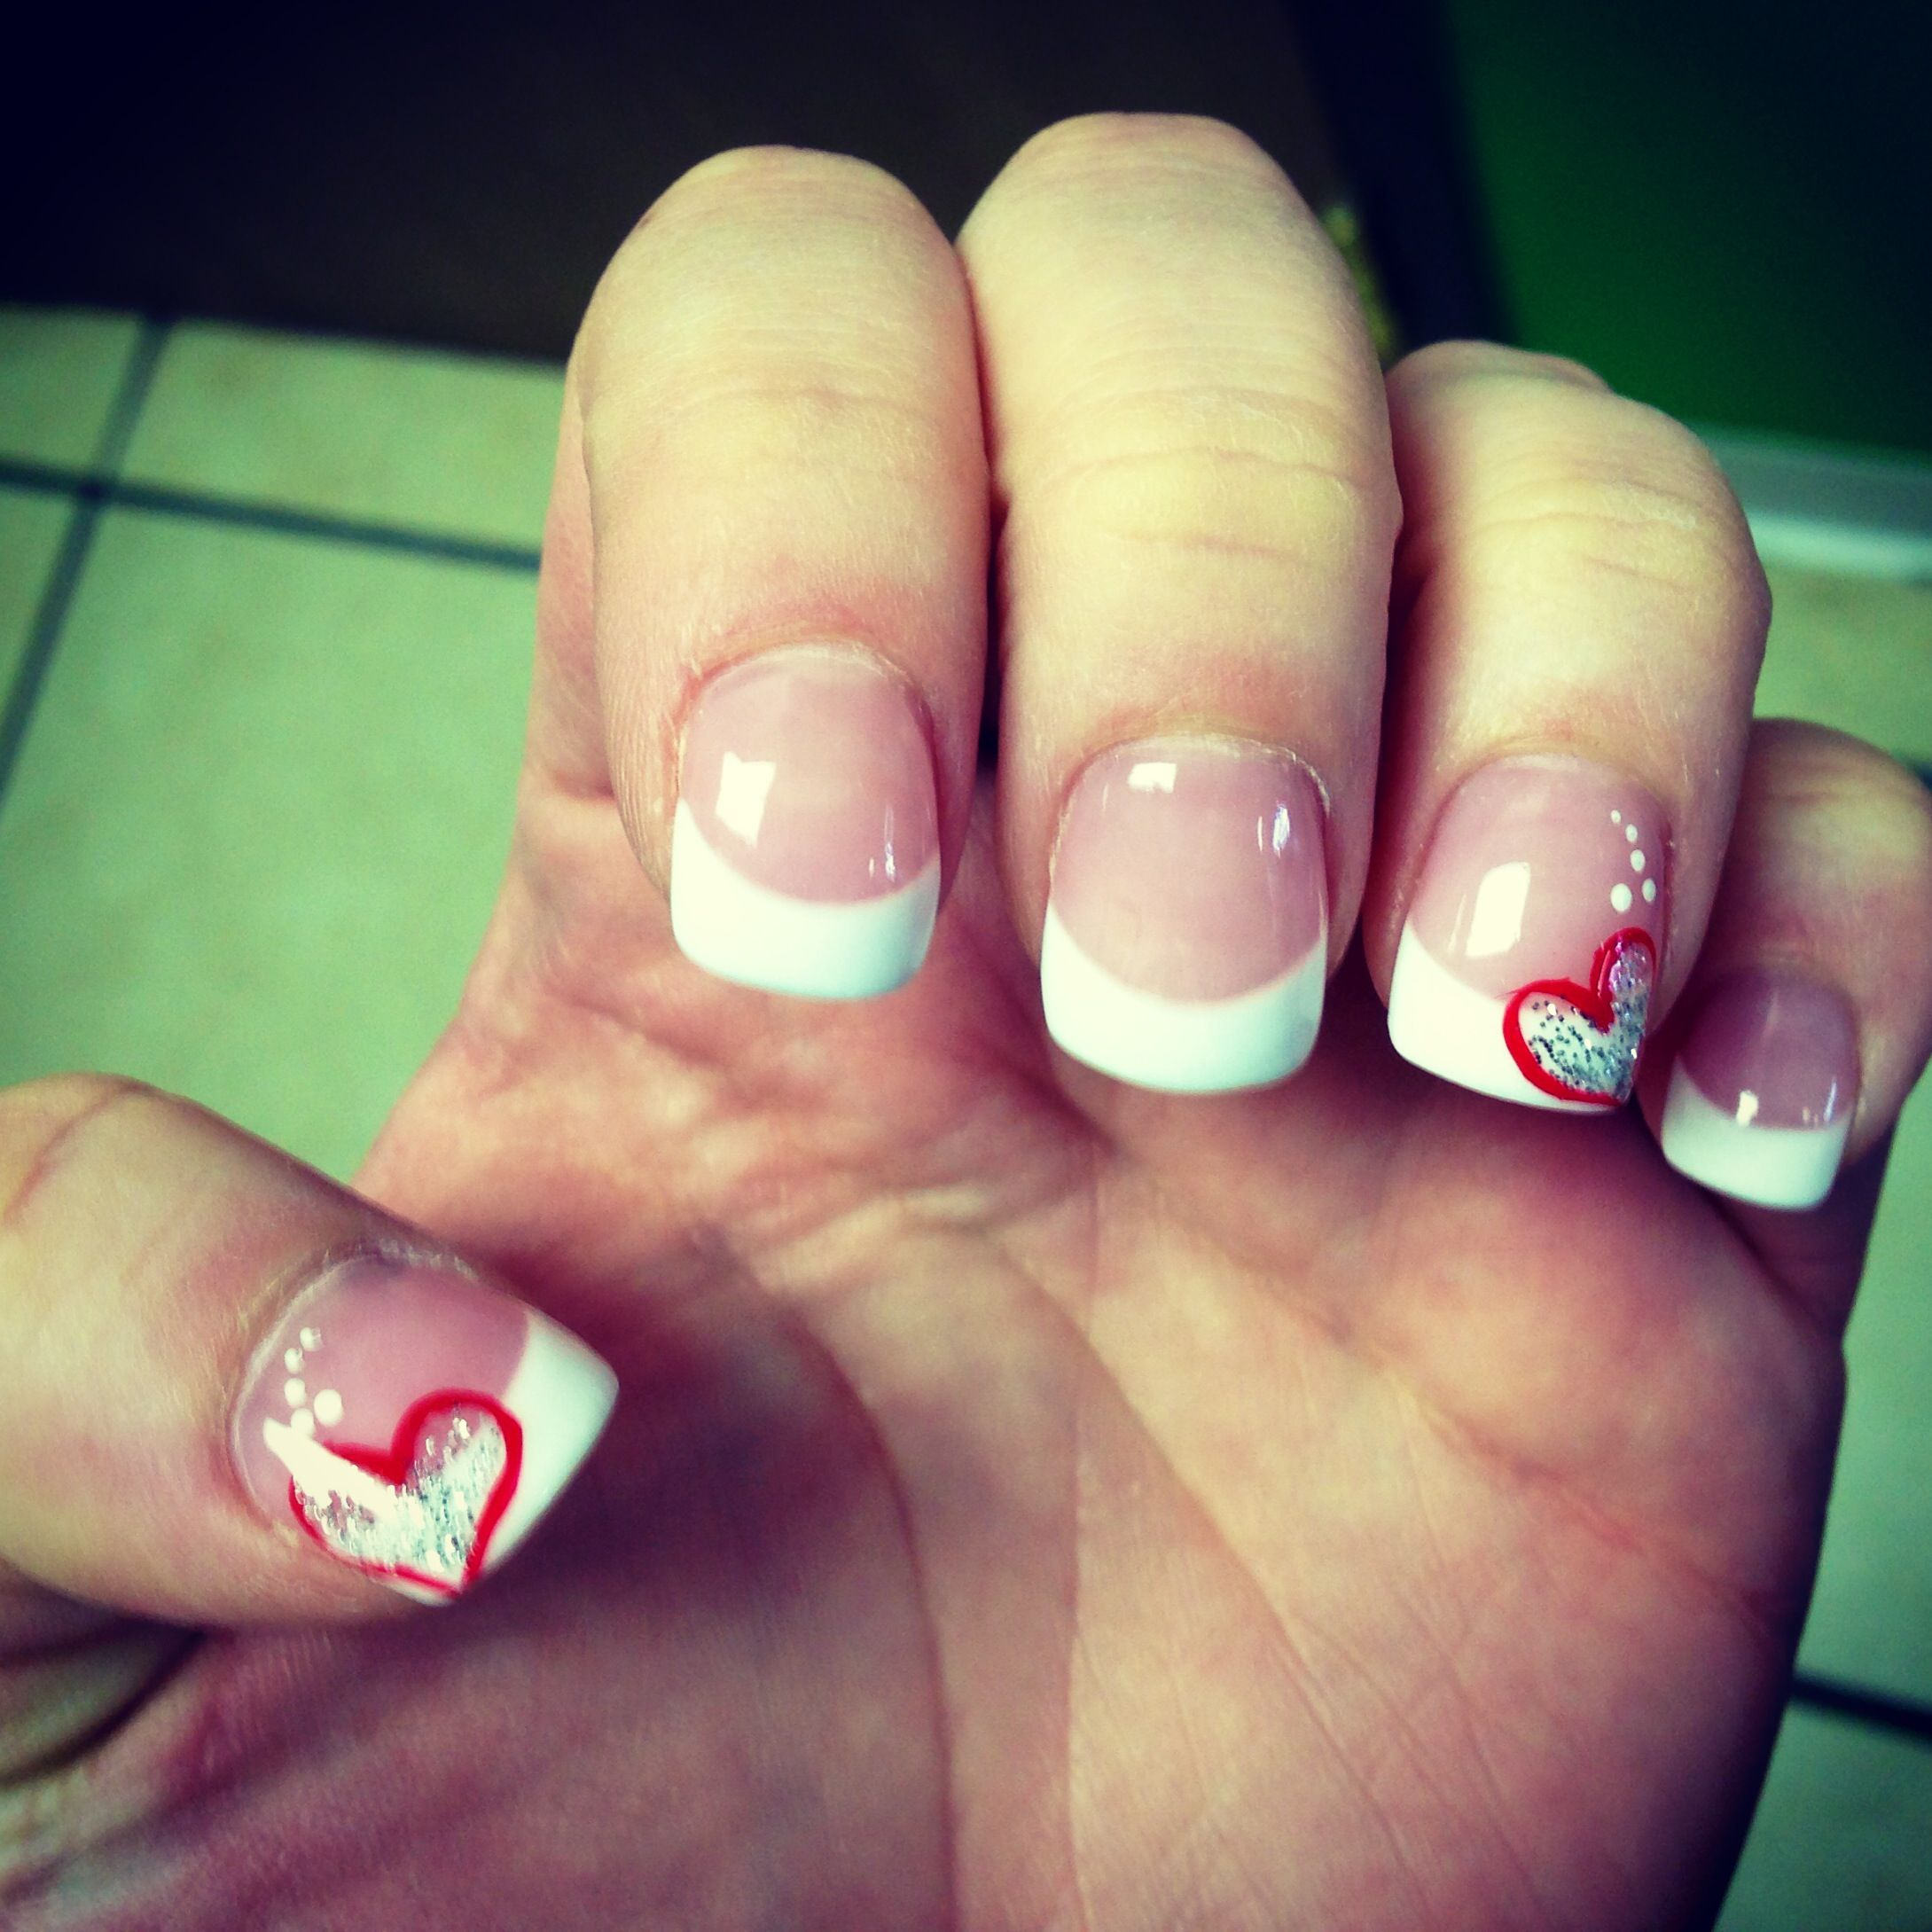 Cute French Tip Manicure with Red Hearts | Nagelschere, Pflege und ...